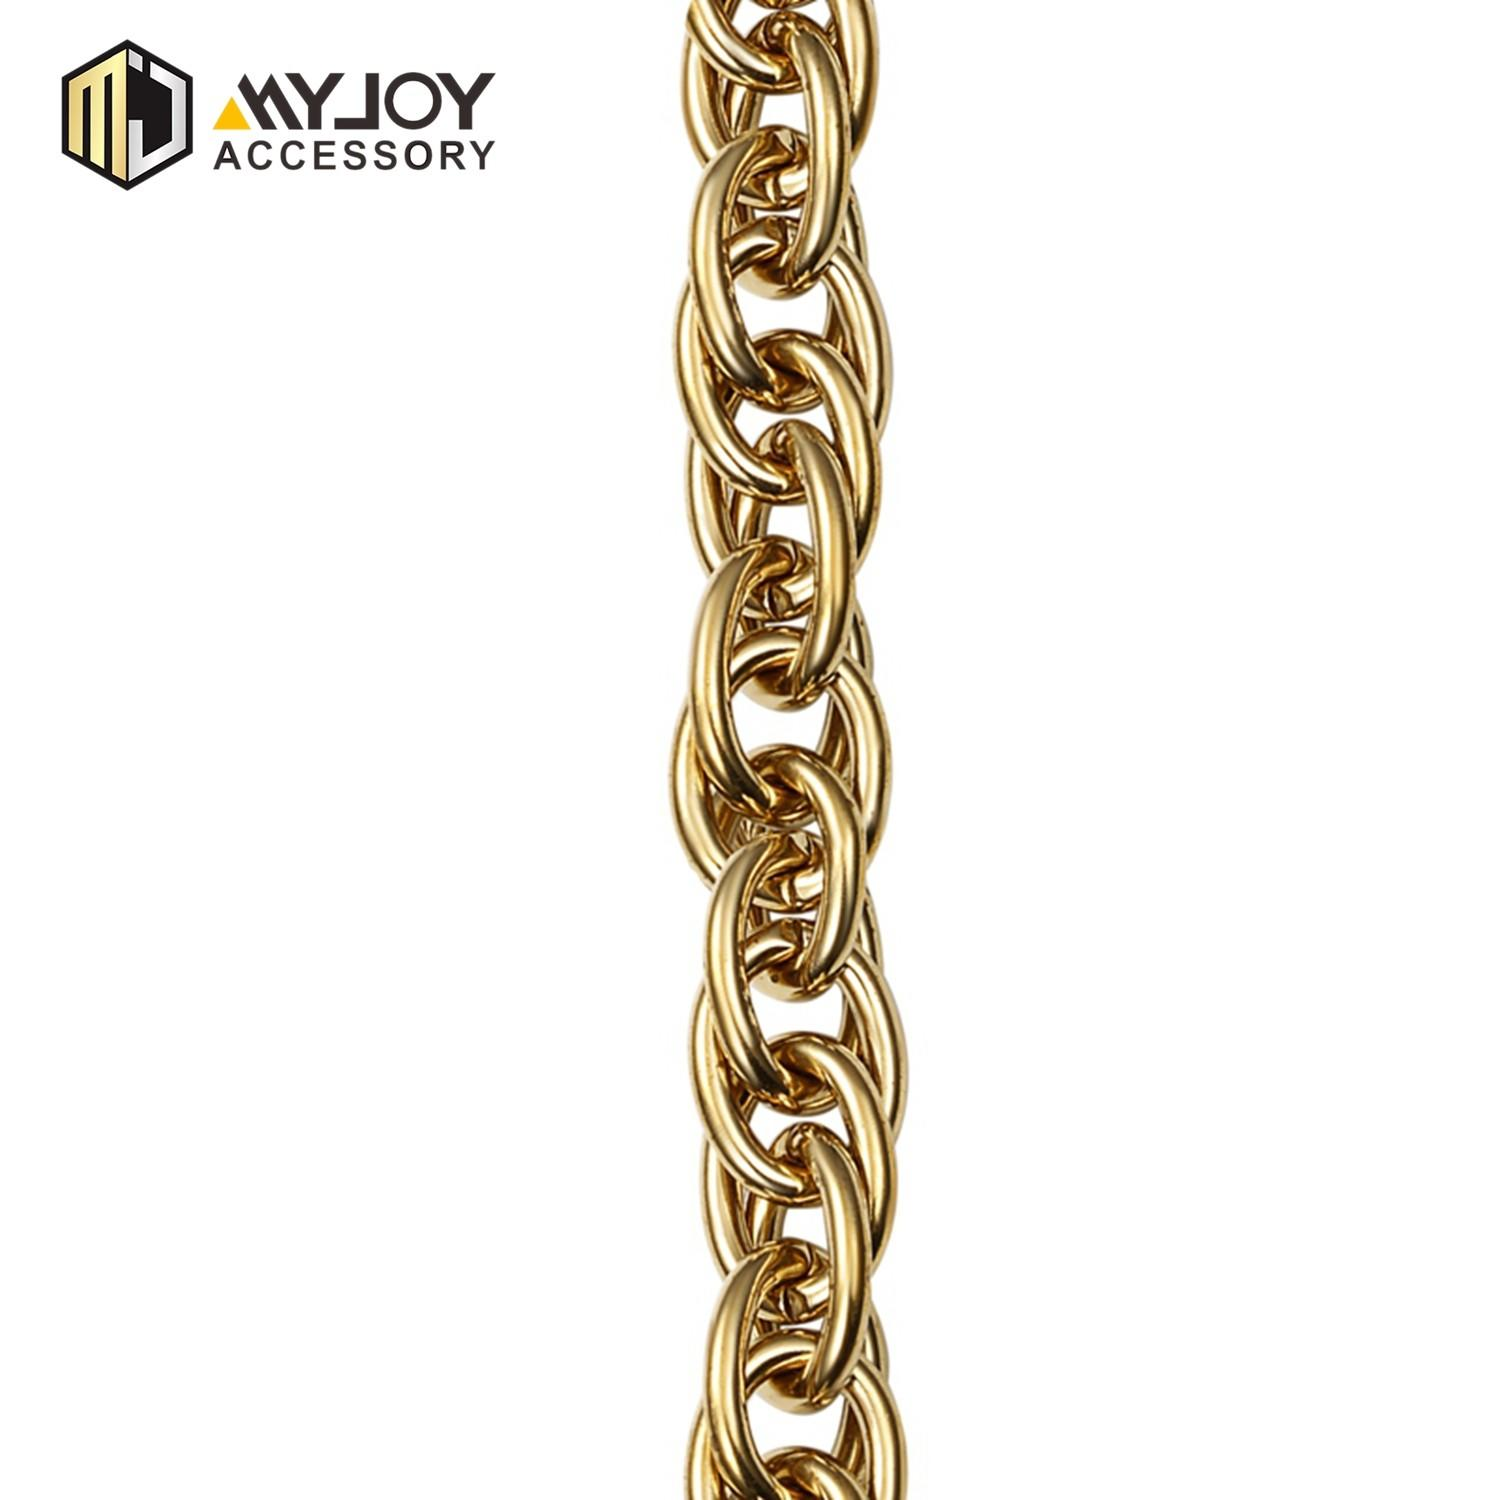 MYJOY Latest handbag strap chain stylish for handbag-1